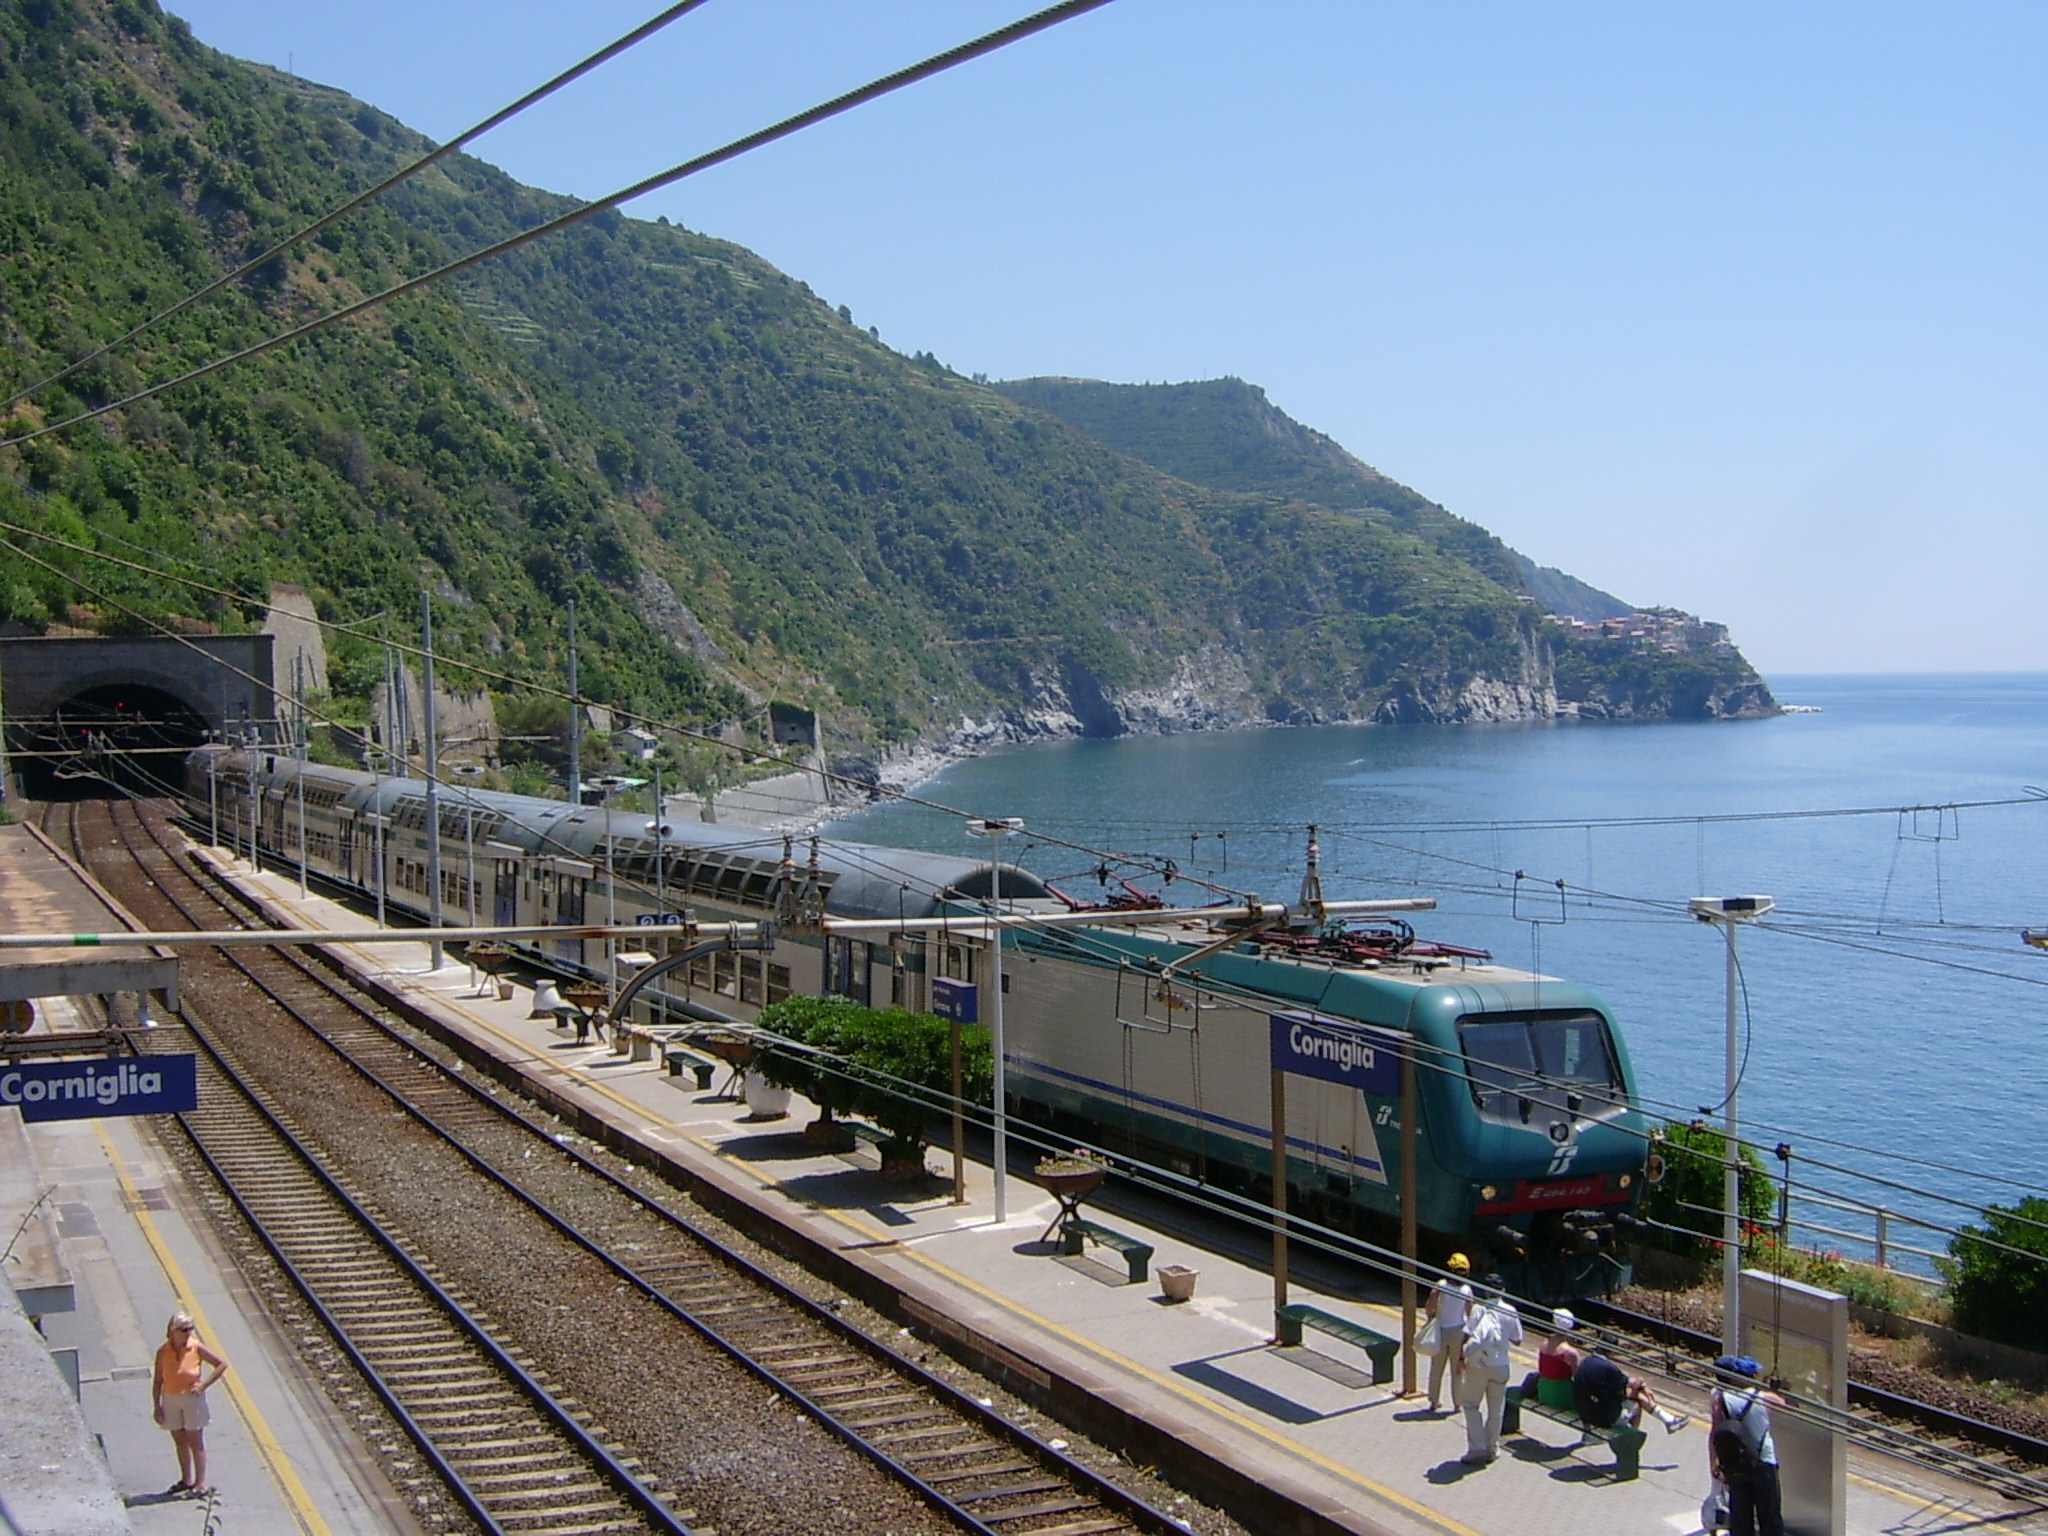 Panoramic station in Cinque Terre